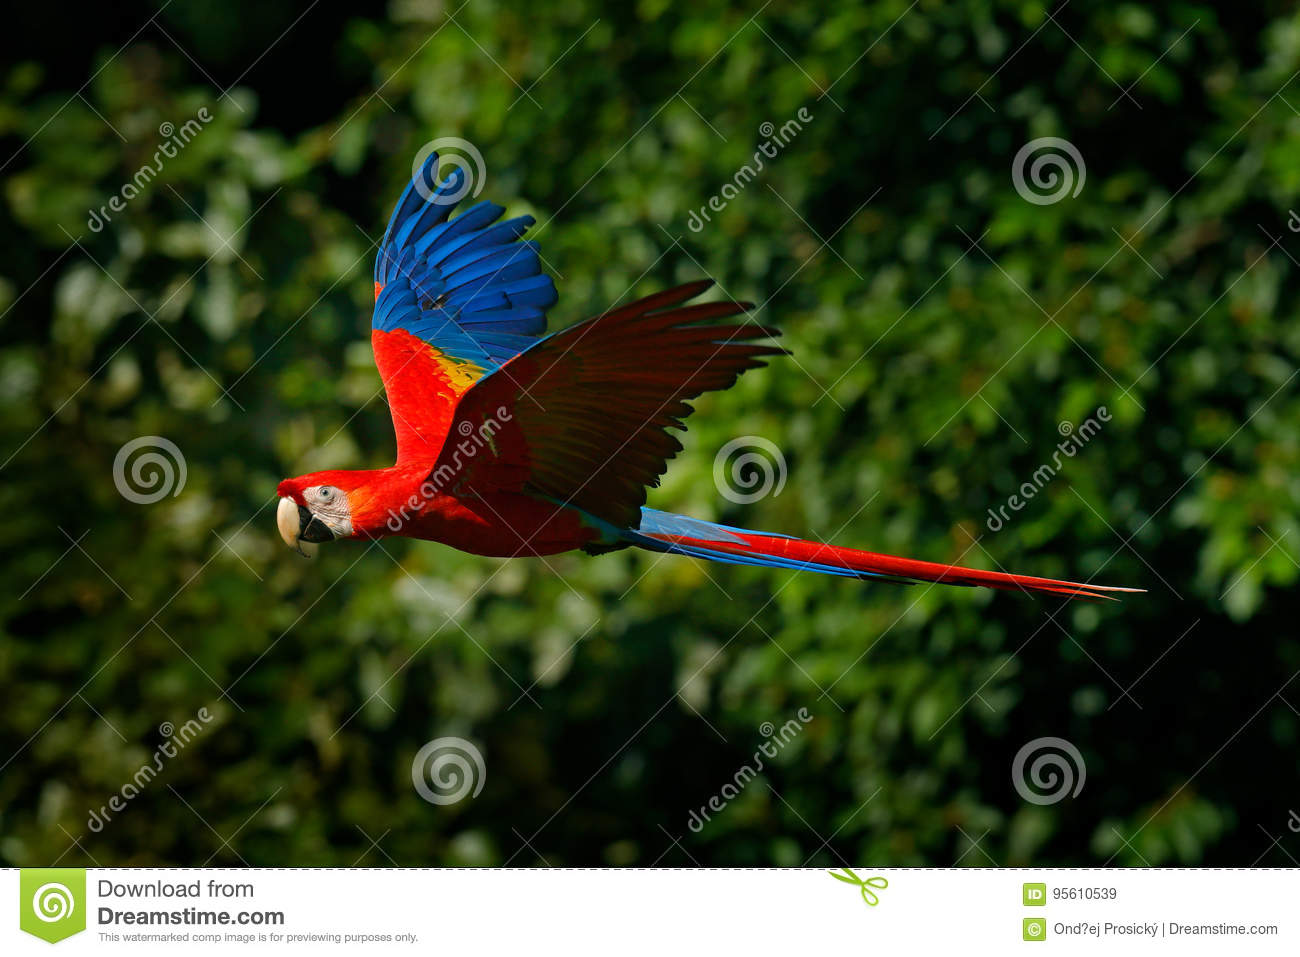 Red parrot in fly. Scarlet Macaw, Ara macao, in tropical forest, Costa Rica, Wildlife scene from tropic nature. Red bird in the fo